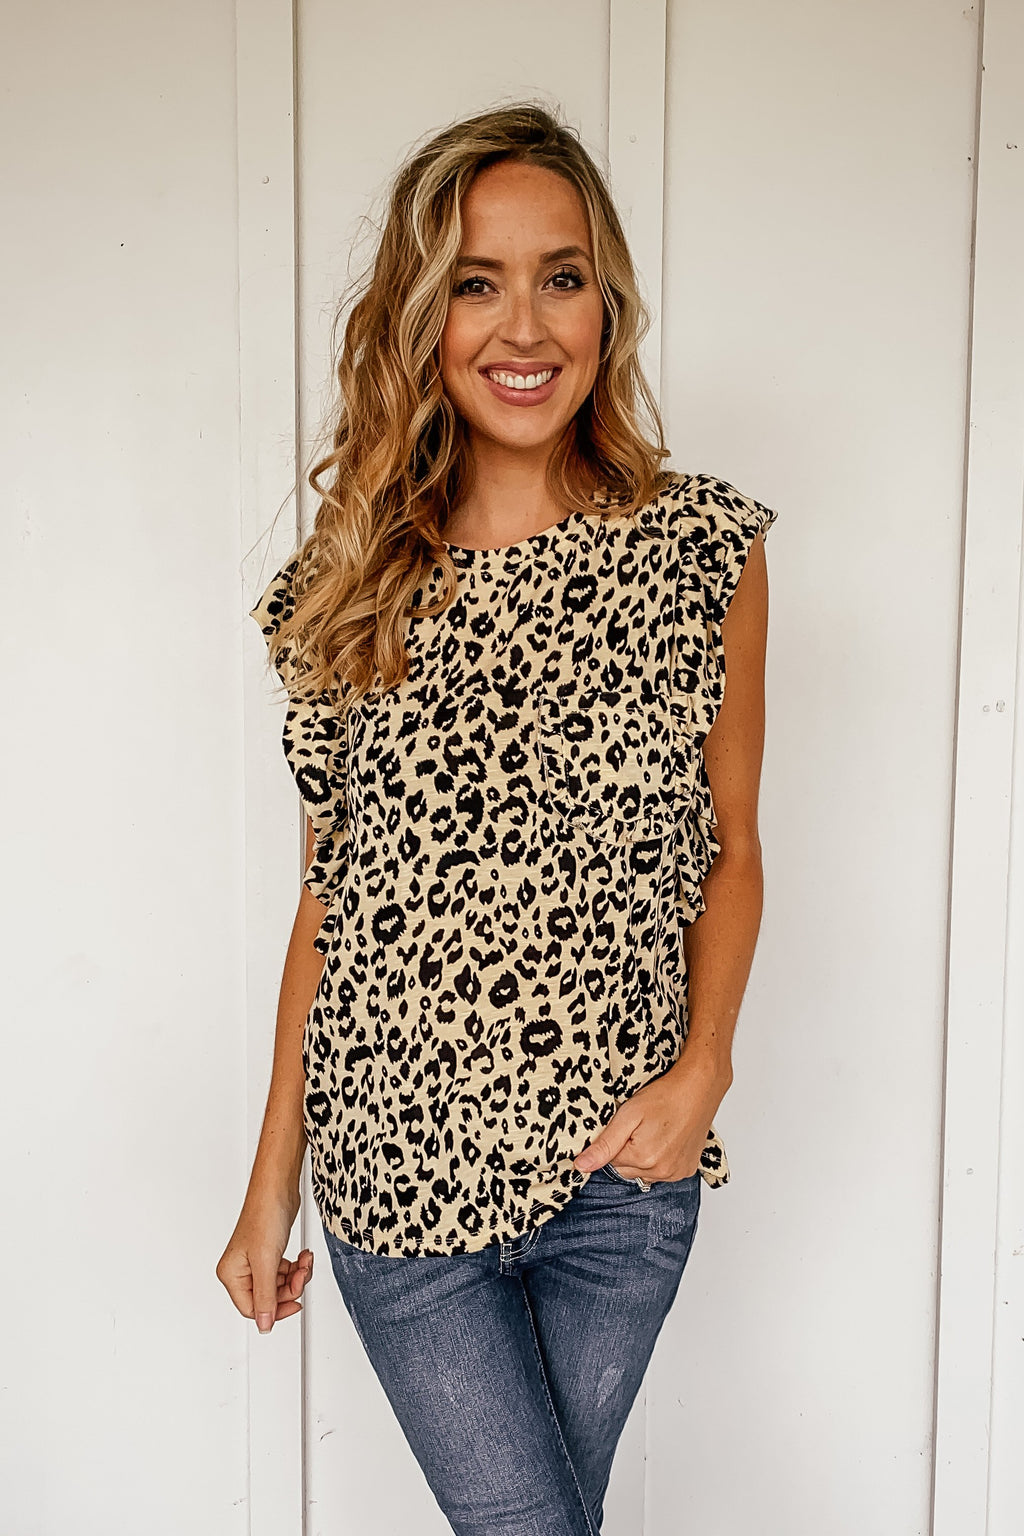 Ruffle Leopard Top - LURE Boutique